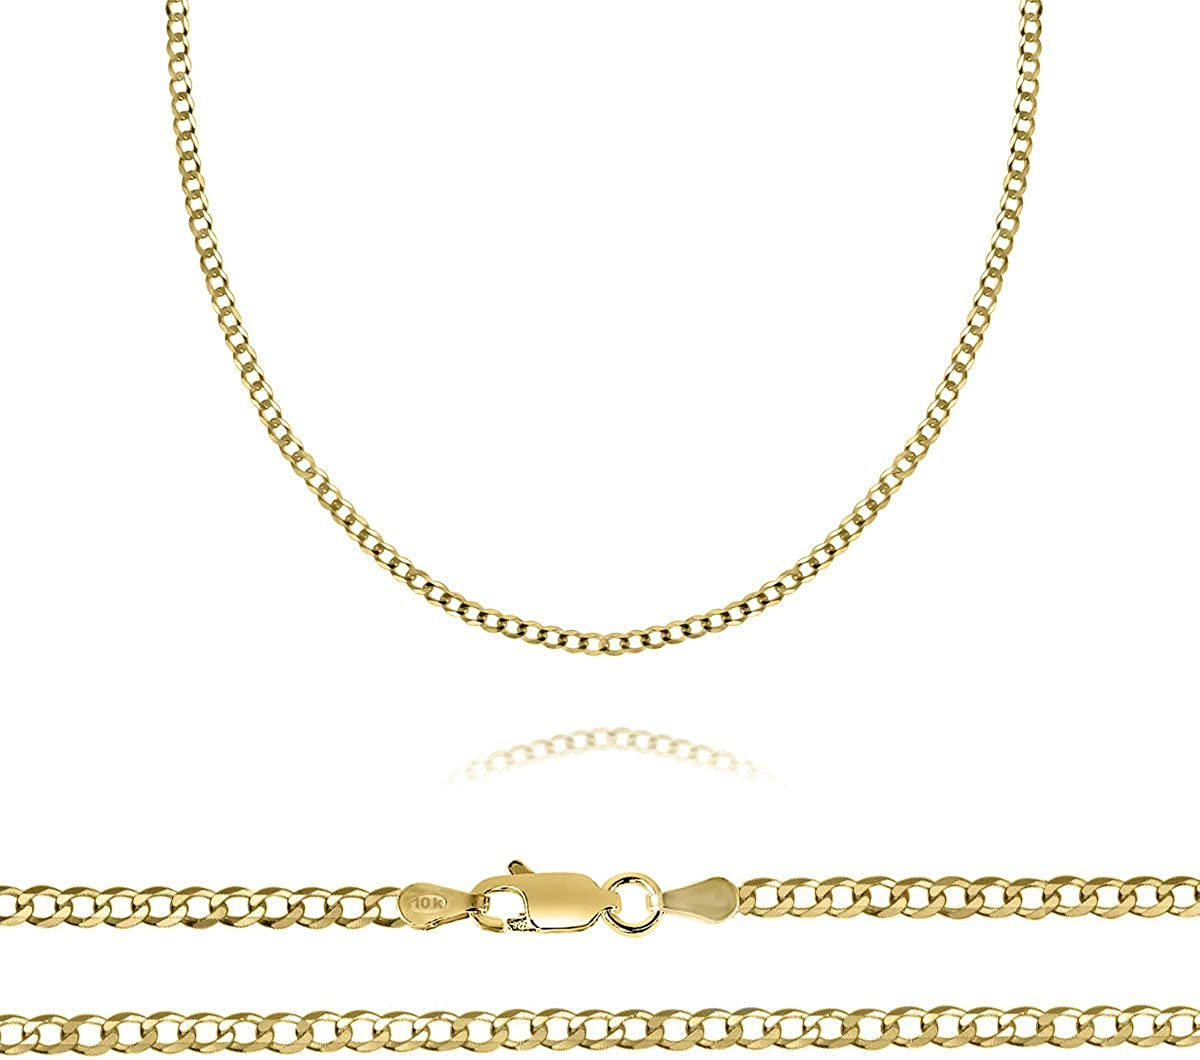 10K Yellow Gold 2mm Curb Chain Necklace, 16